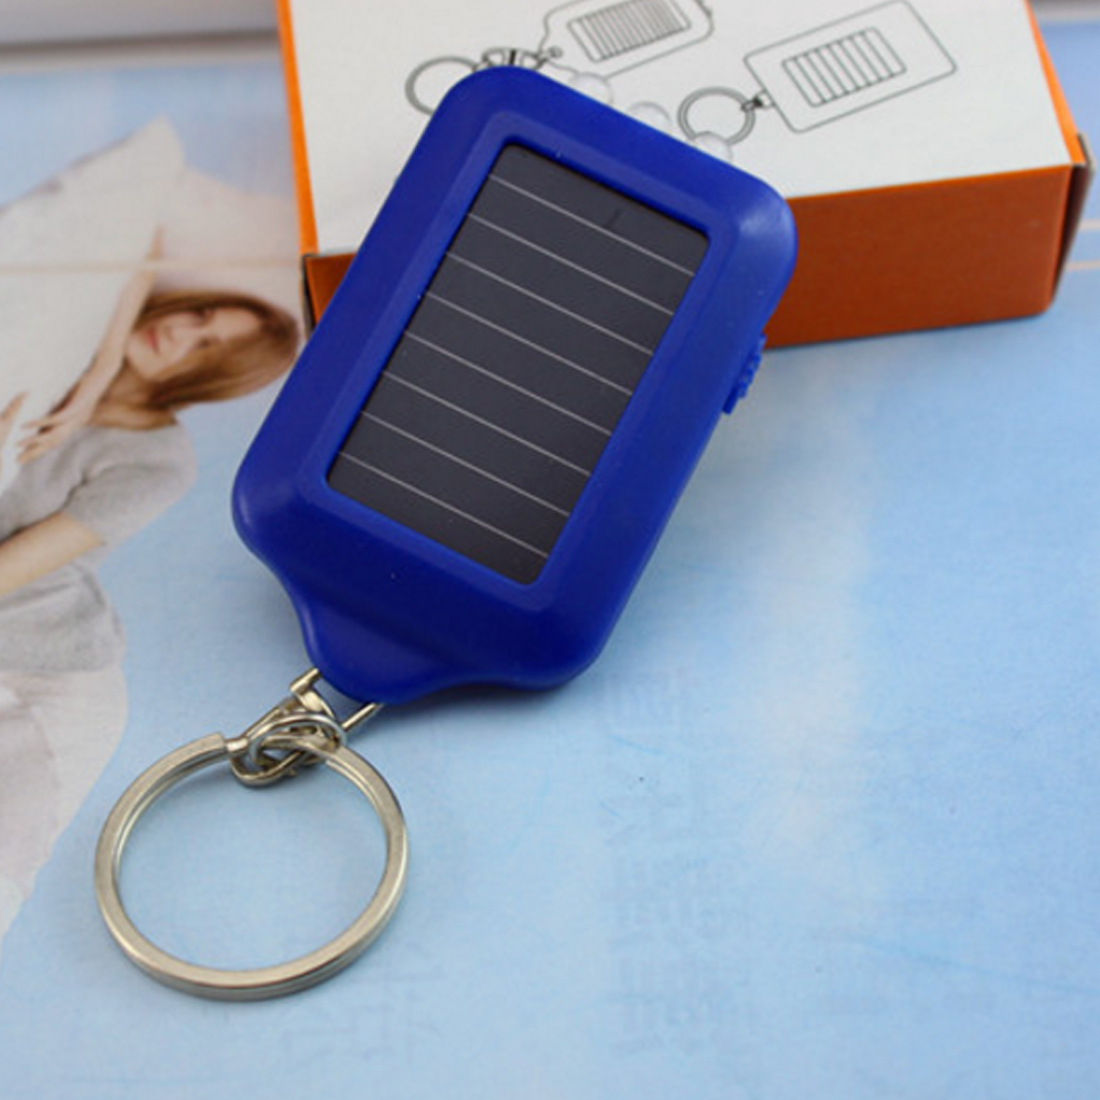 New 3 LEDs Solar Panel Sun Power Energy Torch Camping Light Portable Key Chain Hiking Rechargeable Spotlight Lamp